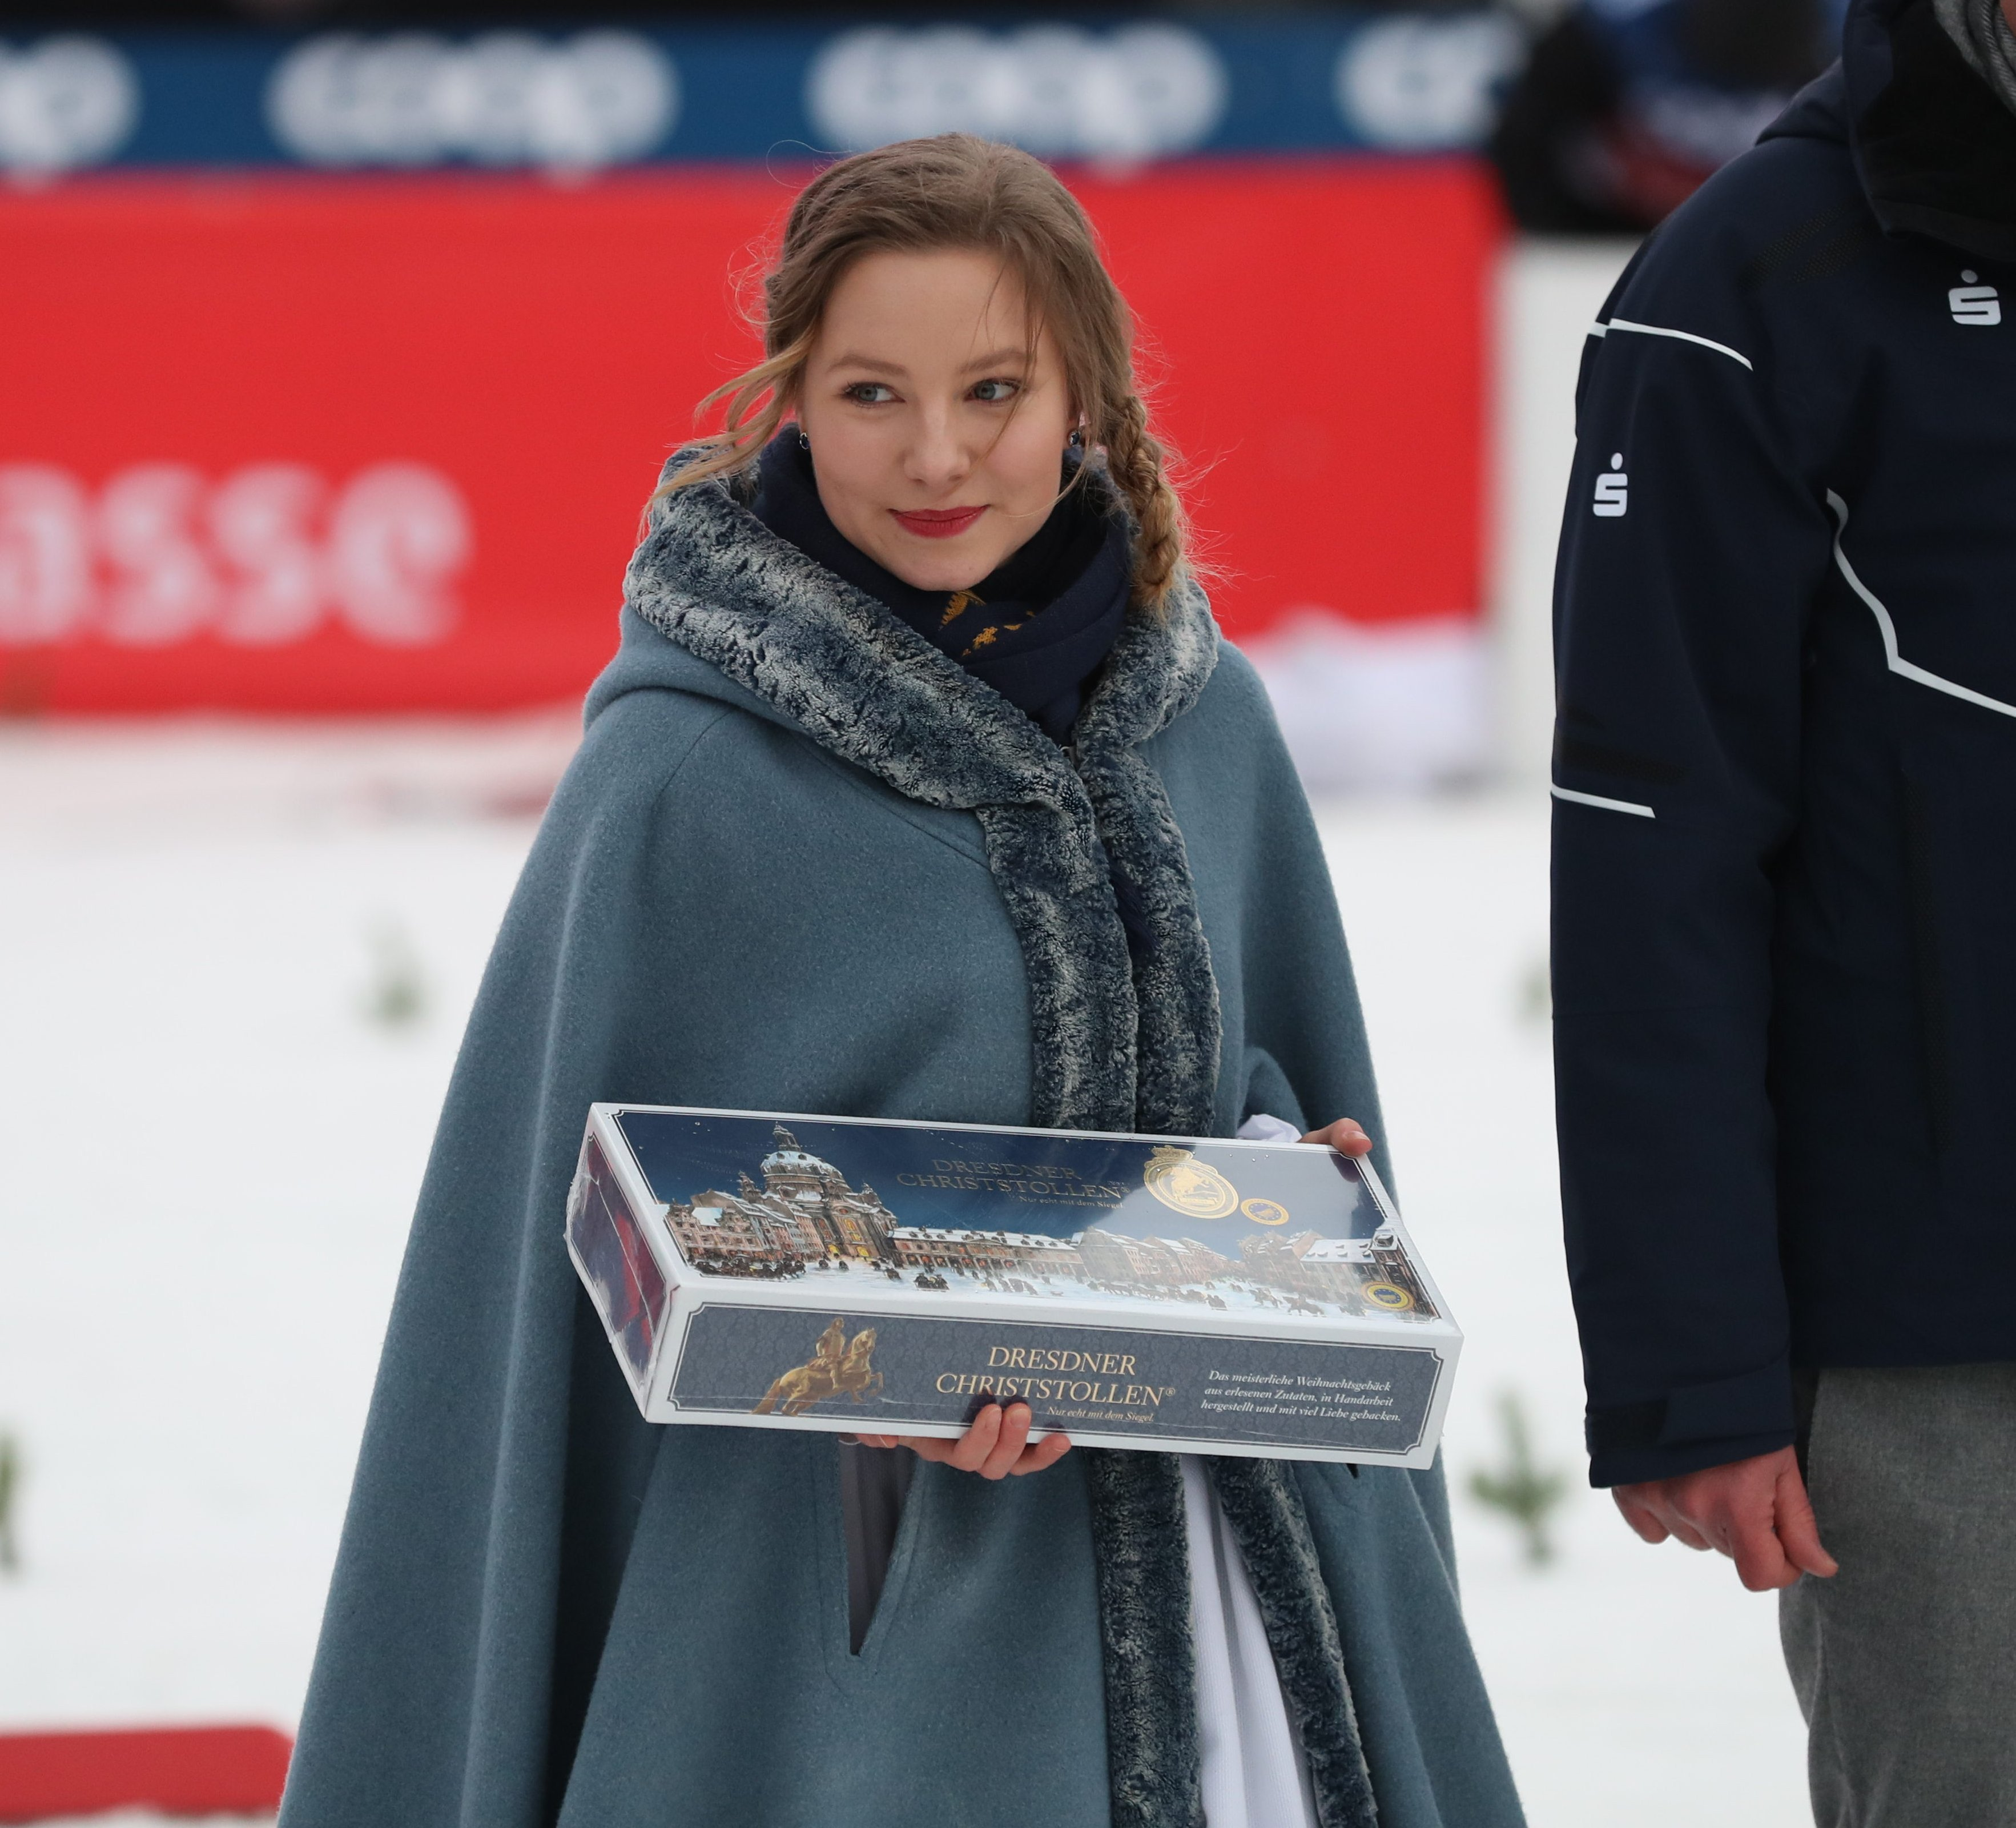 Weihnachtsgebäck 2019.File 2019 01 12 Victory Ceremonies At The At Fis Cross Country World